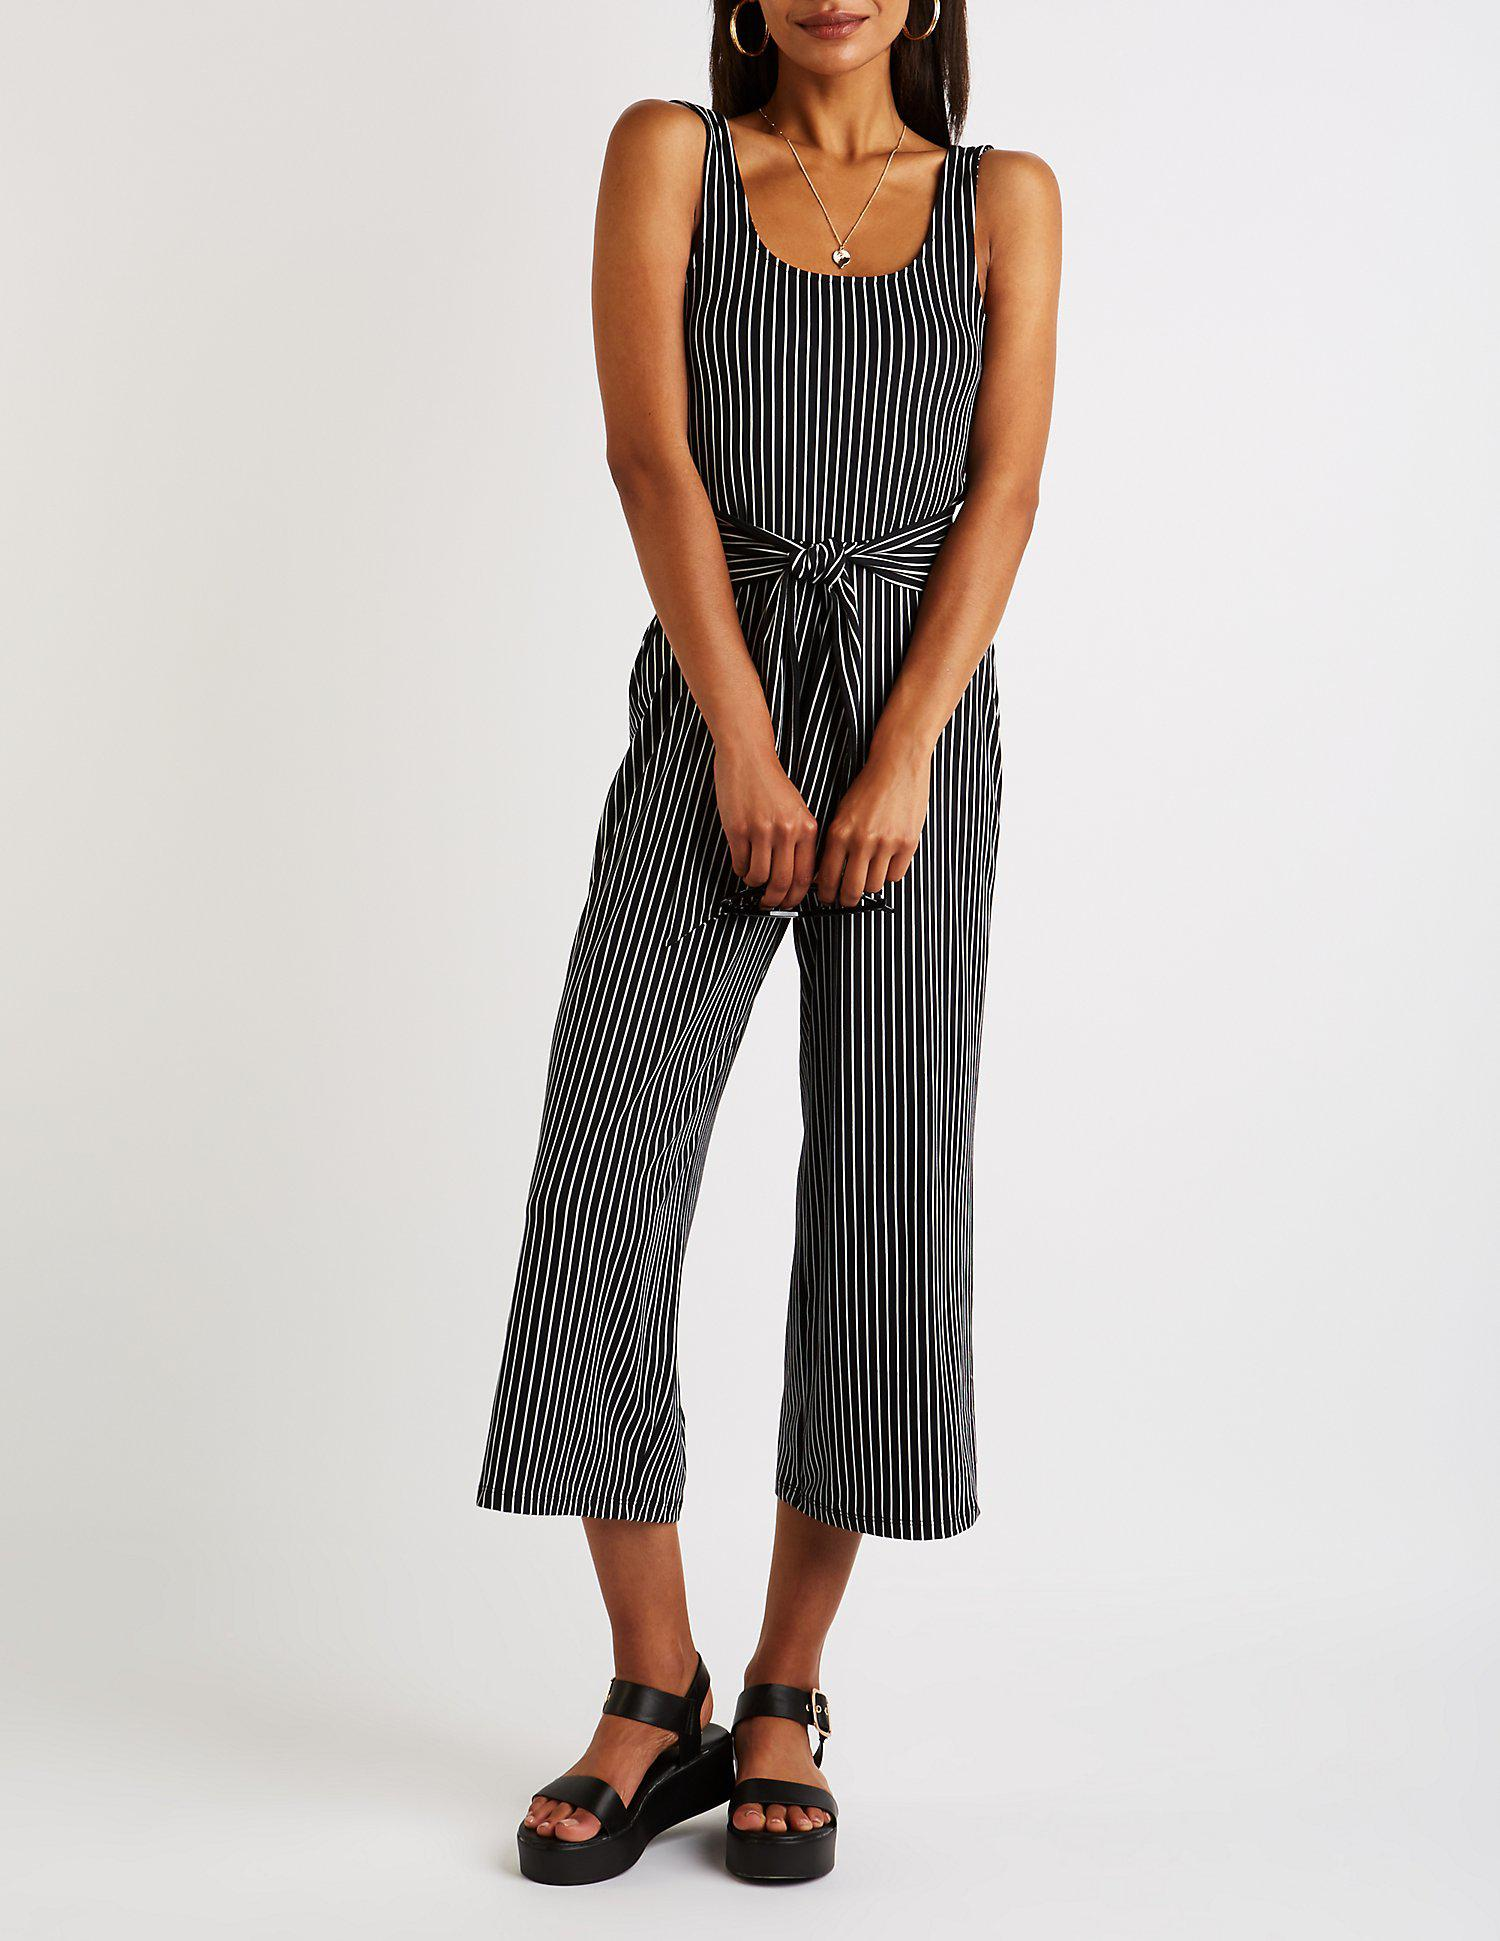 460a58b377ba Lyst - Charlotte Russe Striped Scoop Neck Cropped Jumpsuit in Black